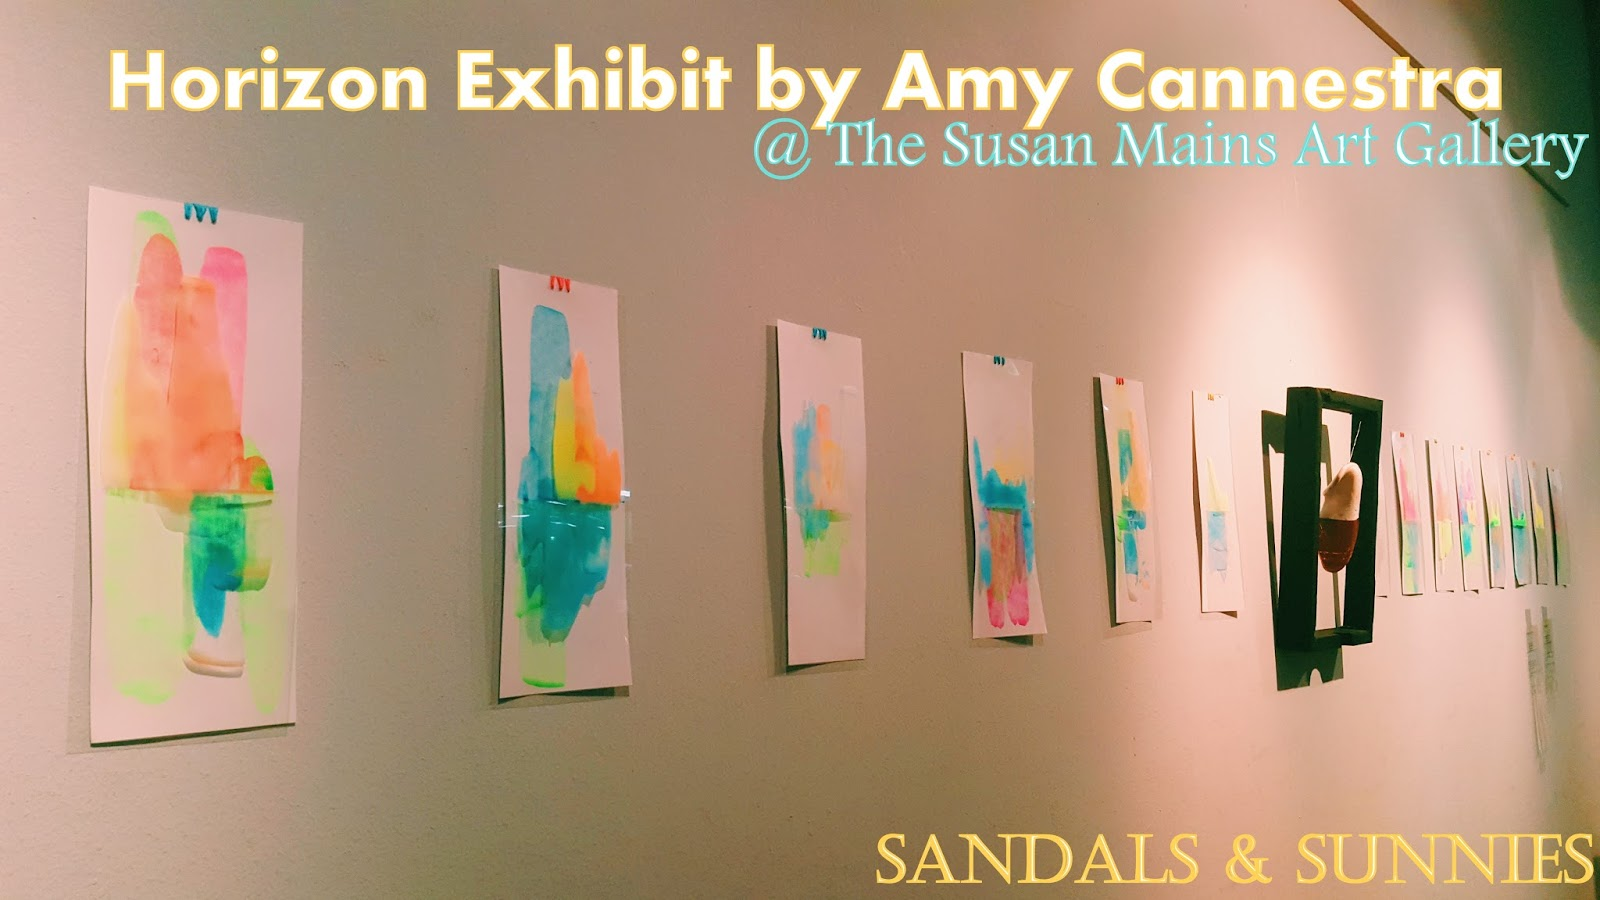 On Beauty is fleeting and Second Chances | Horizon Exhibit By Amy Cannestra. at the Susan Mains Gallery